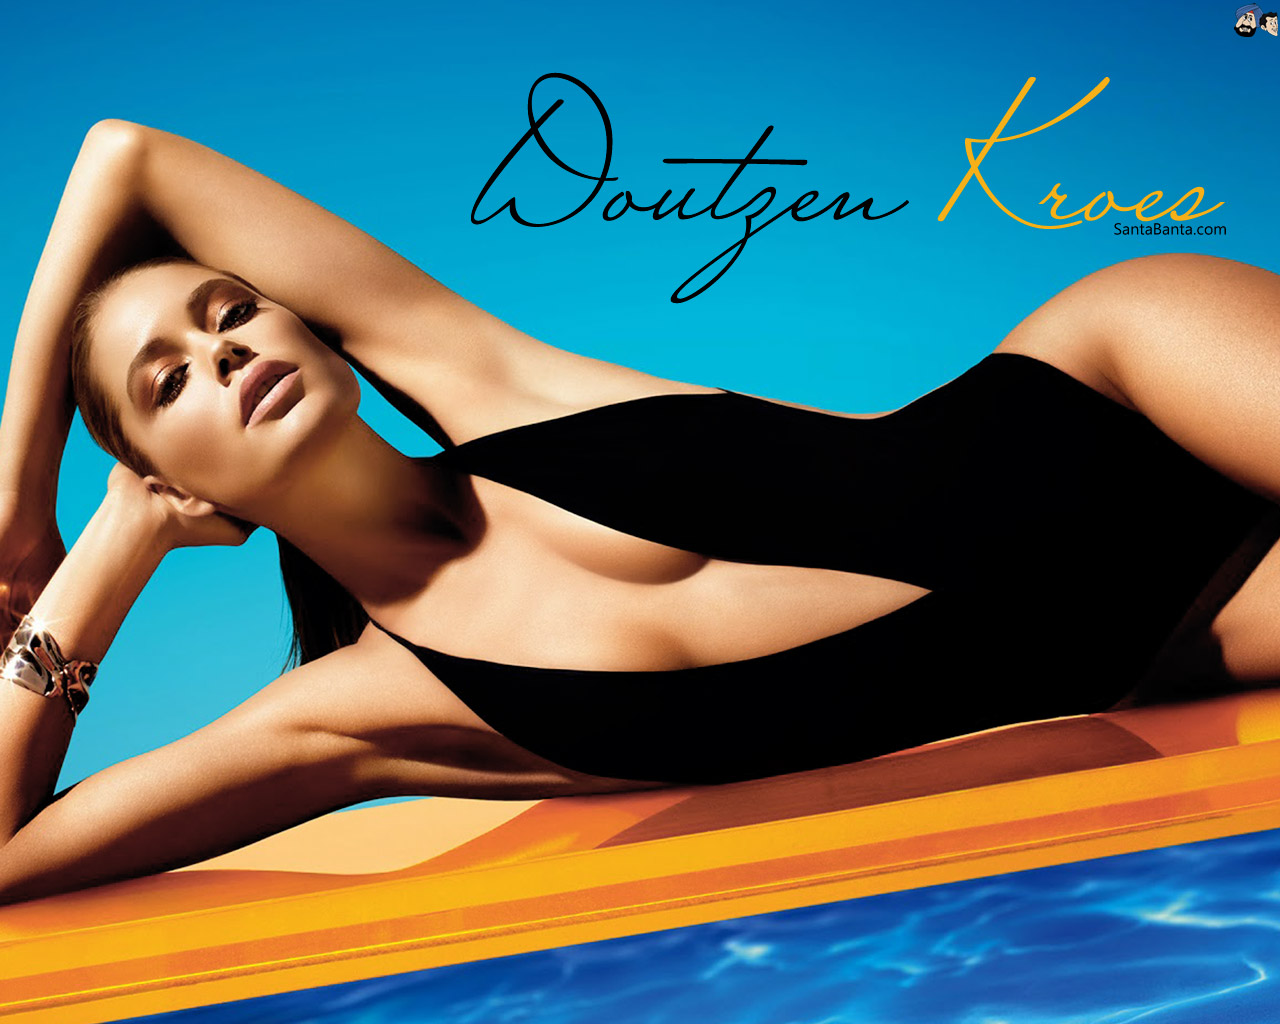 Cute Korean Wallpaper For Desktop Doutzen Kroes Hd Wallpapers Most Beautiful Places In The